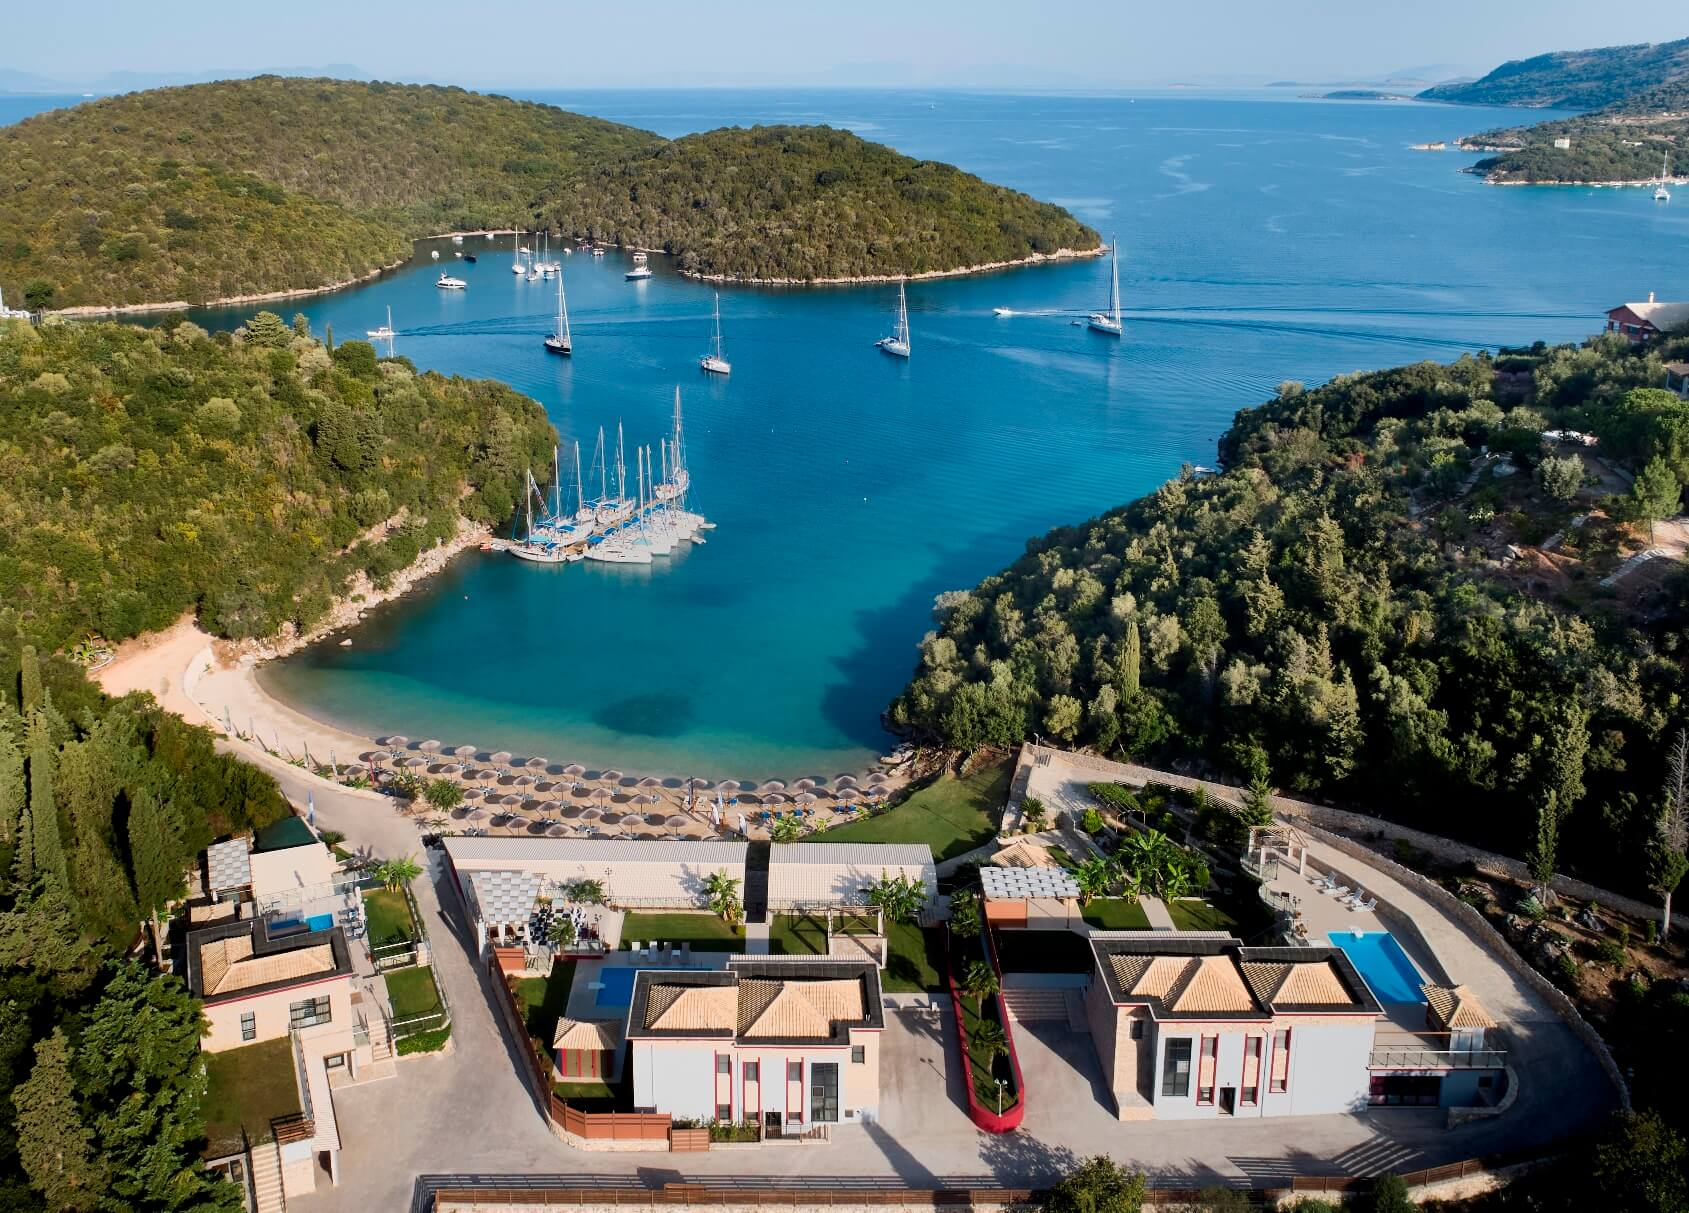 Karvouno-Villas-sivota-luxury-villas-private